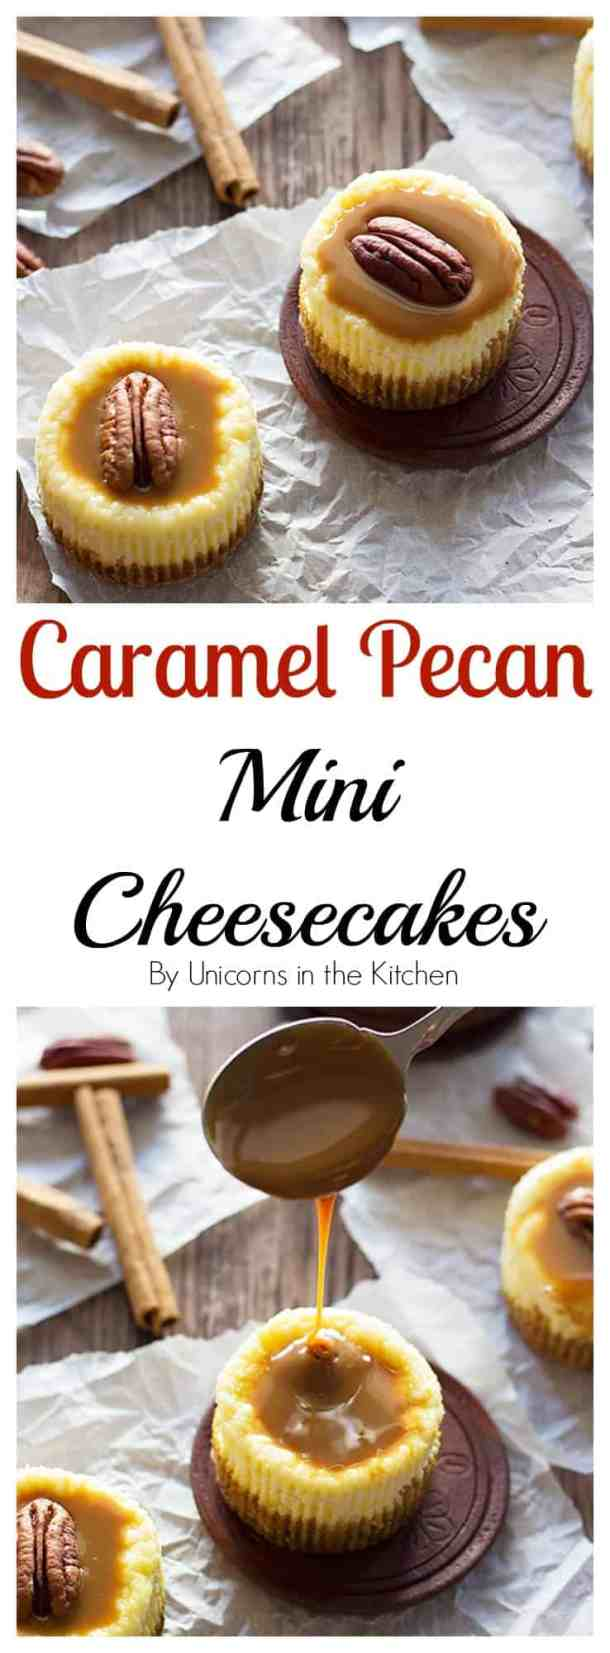 Enjoy a bite of happiness with these cute Caramel Pecan Mini Cheesecakes made in a muffin pan. They're velvety, creamy and have a perfect balance of sweetness!